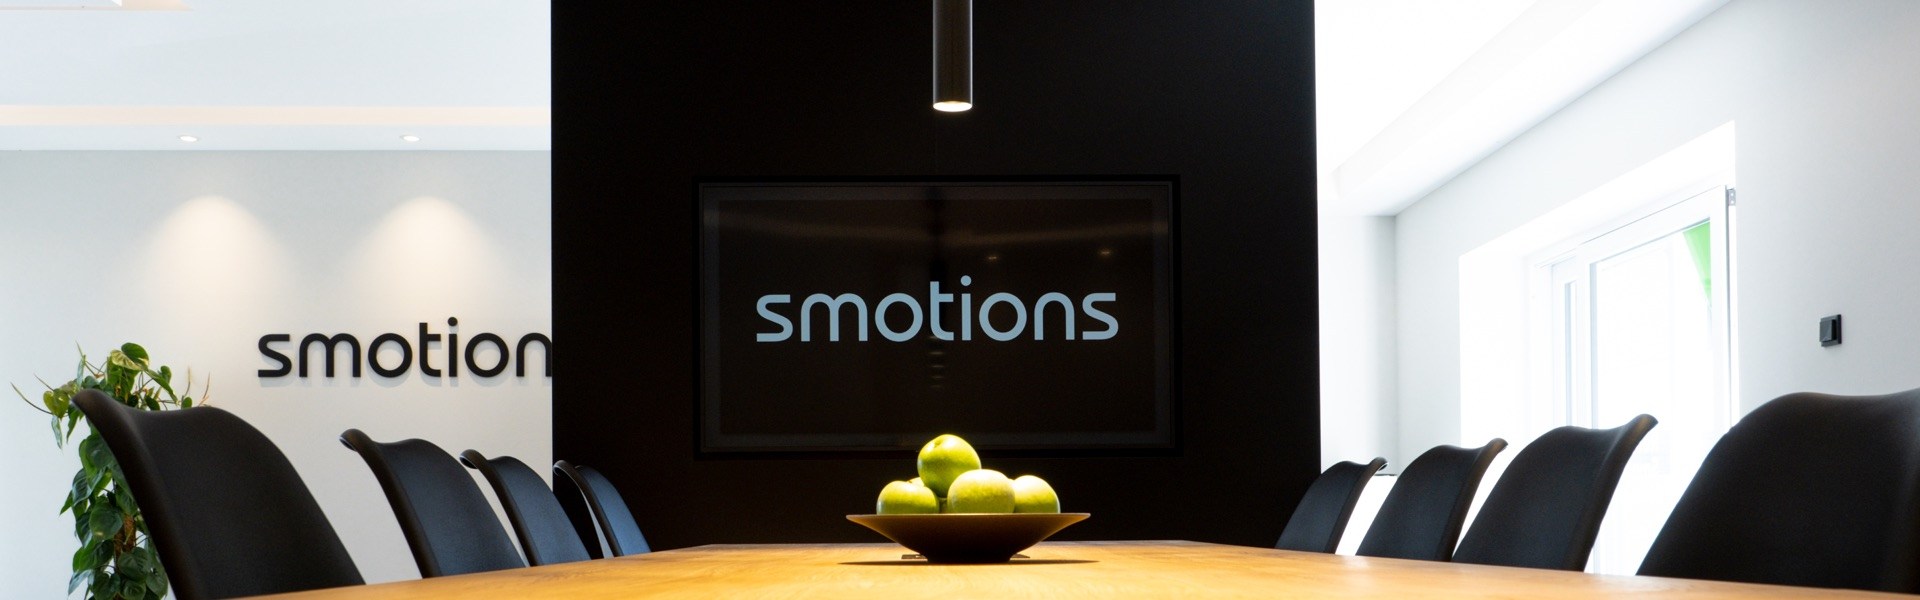 Smart Home Erkelenz - smotions